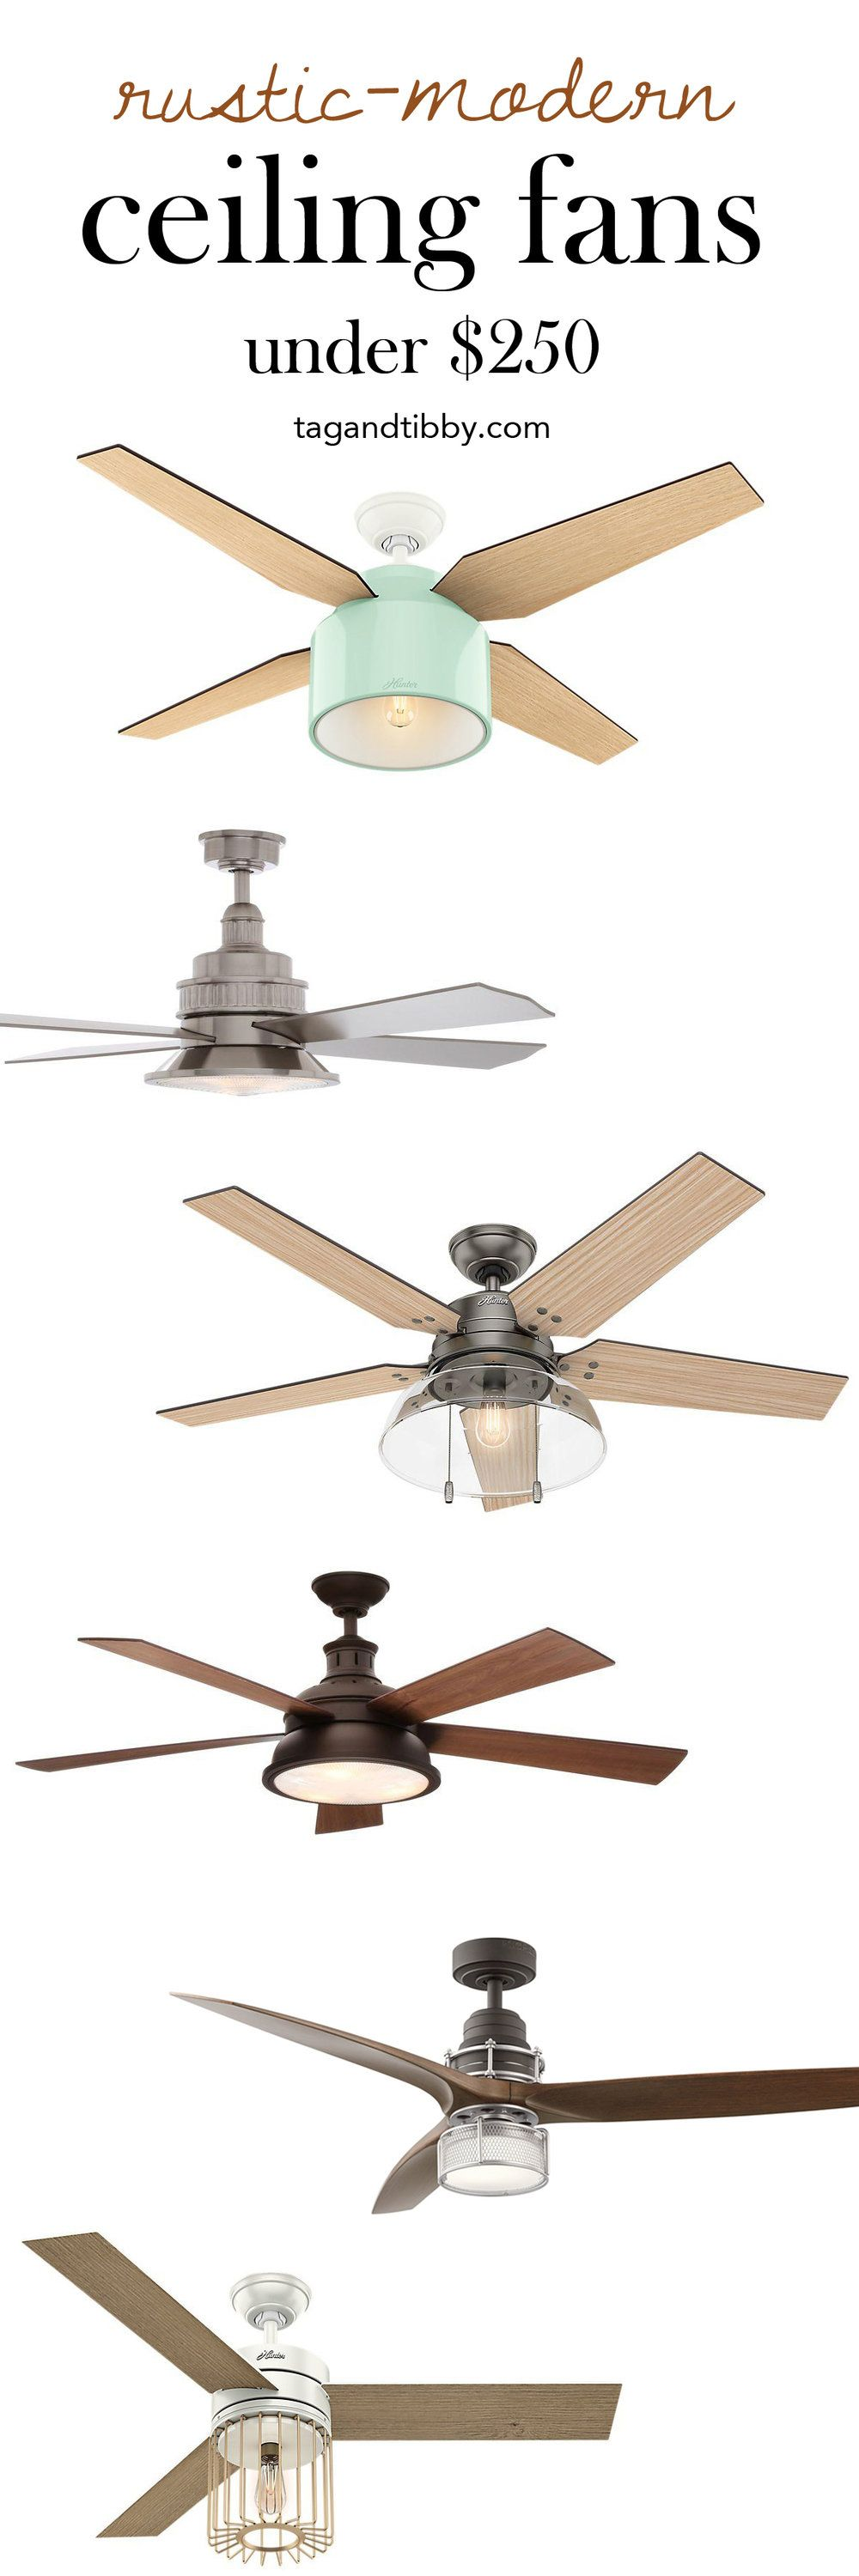 8 Modern Rustic Ceiling Fans For Under 250 Tag Tibby Design Modern Ceiling Fan Rustic Ceiling Fan Ceiling Fan